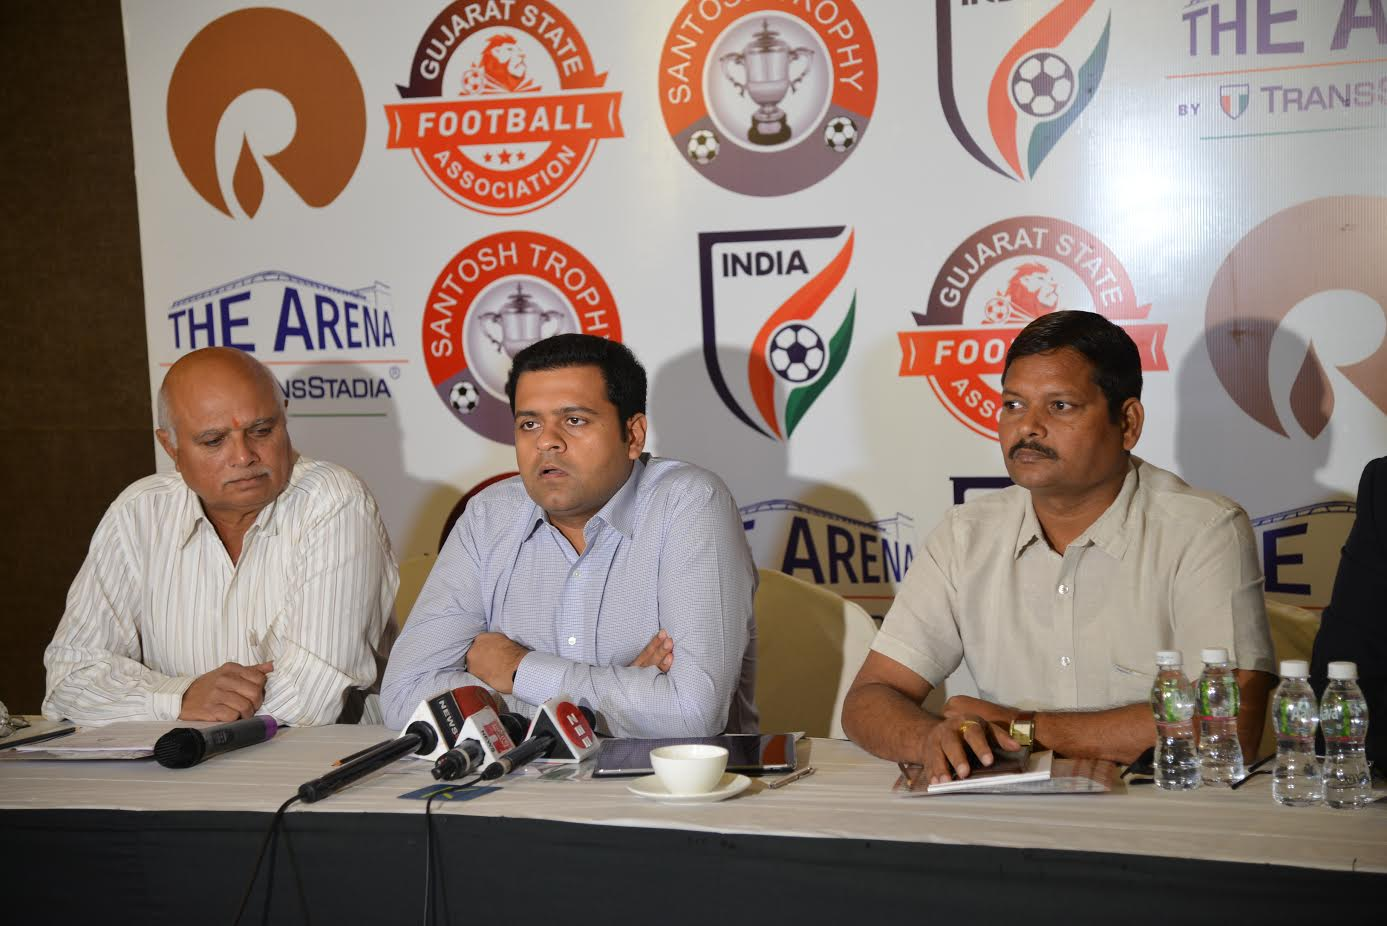 Ahmedabad to host first national level football championship: Santosh Trophy West Zone matches starting from Monday